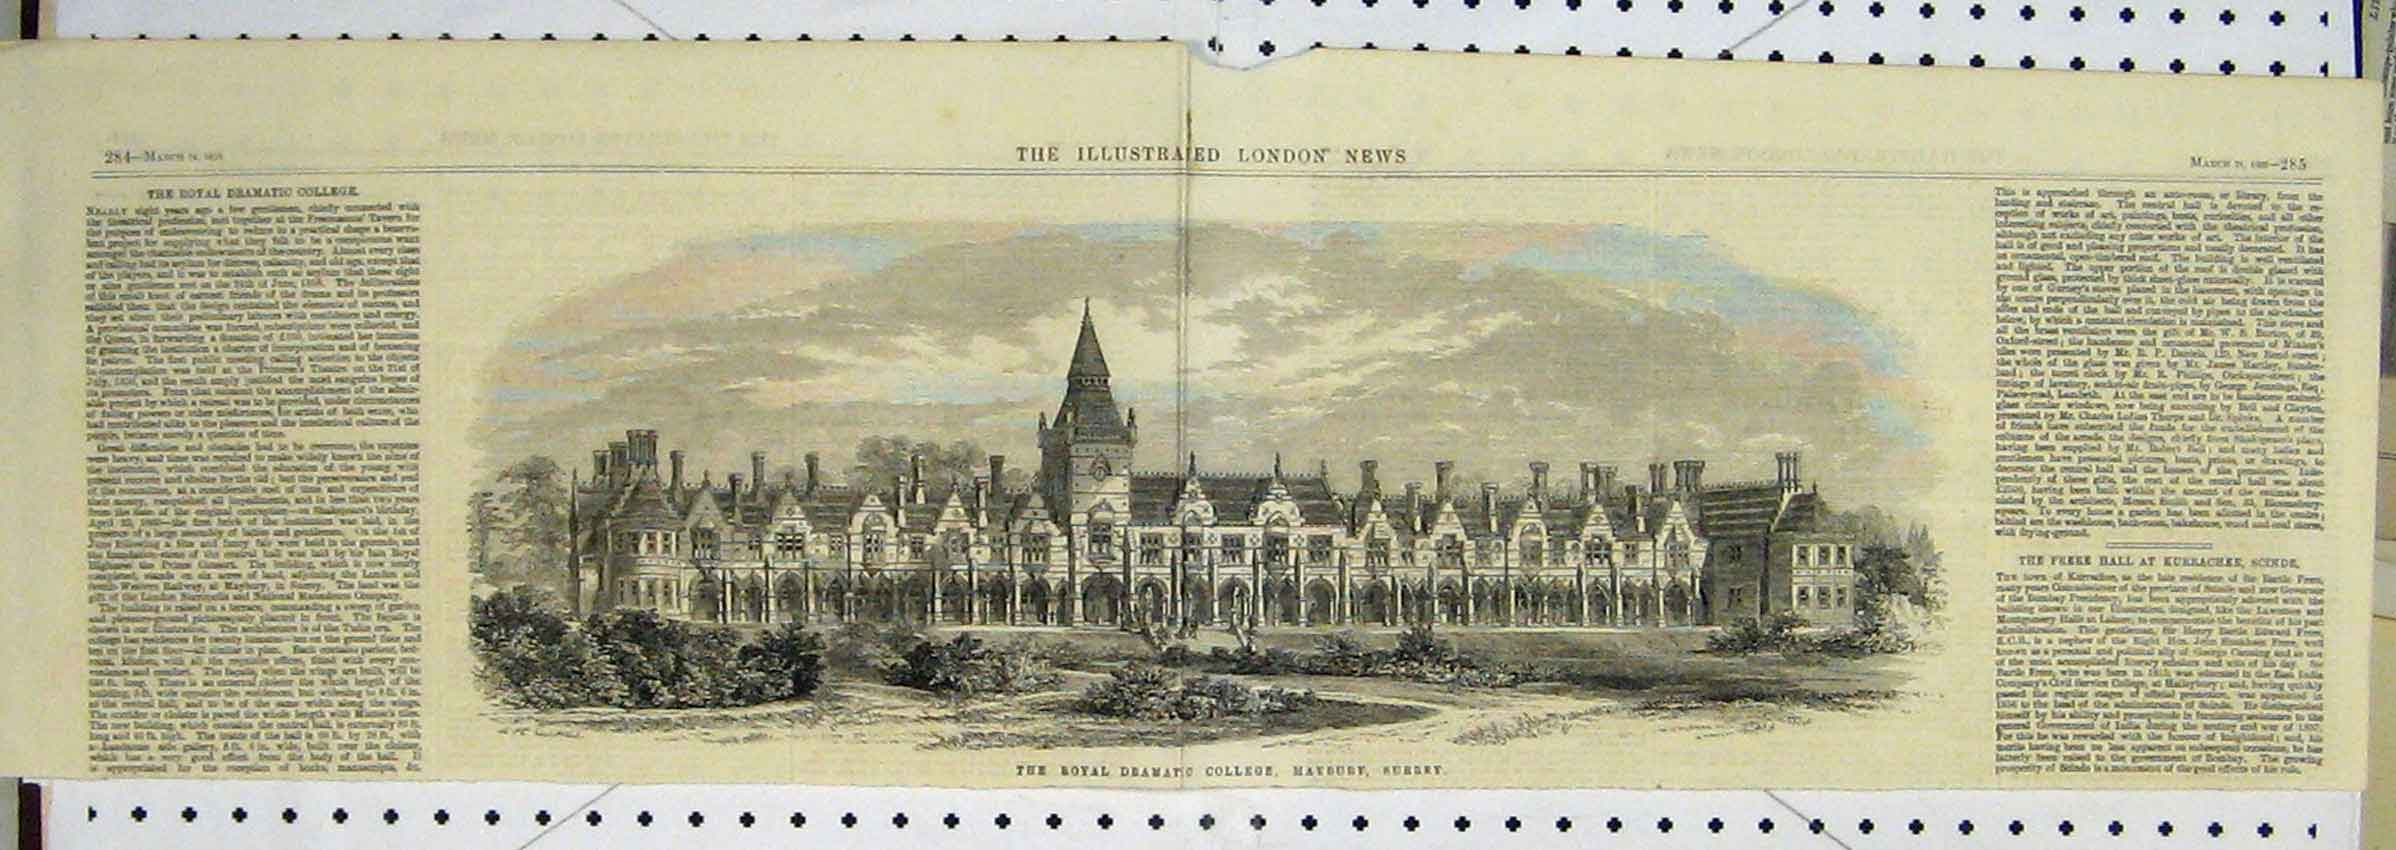 Print 1866 View Royal Dramatic College Surrey 102B251 Old Original